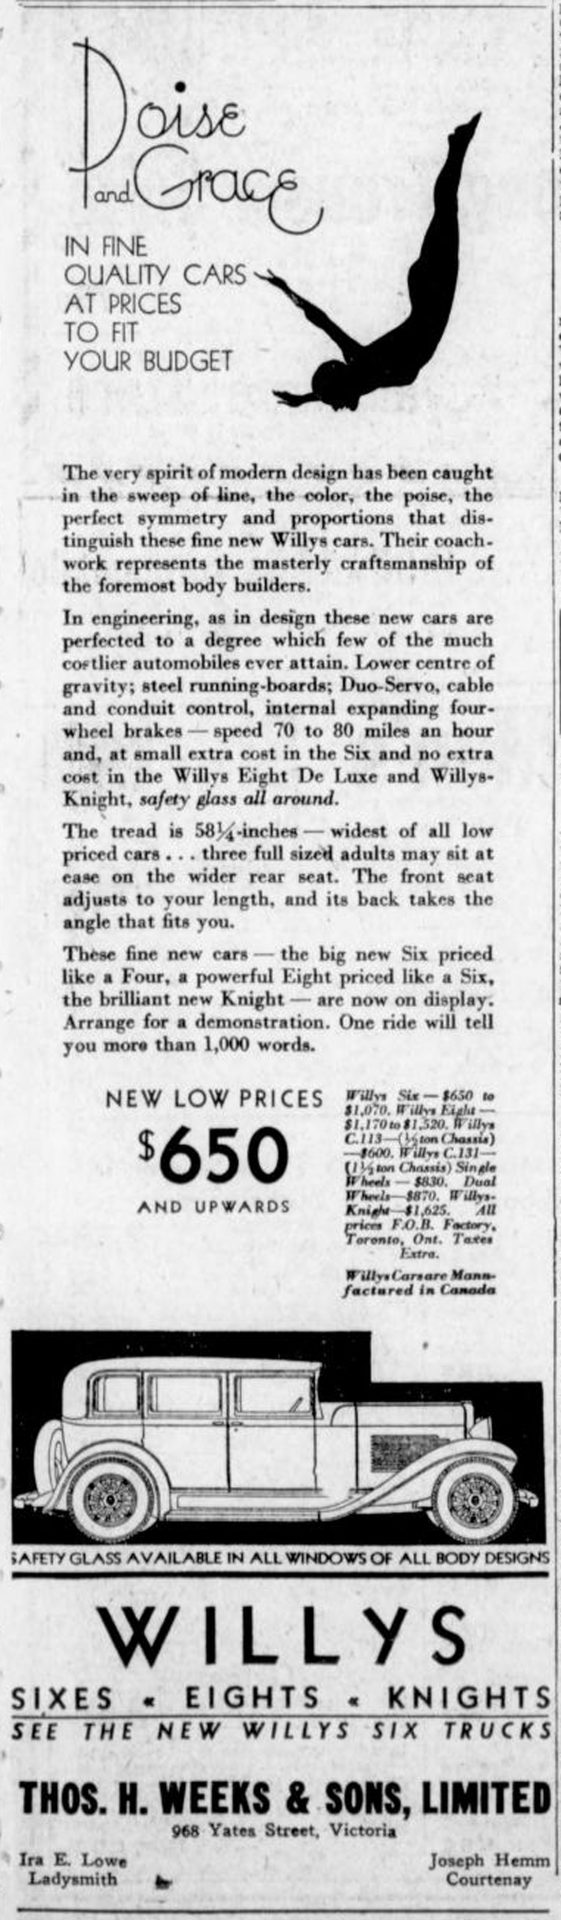 1931 advertisement for Willy's automobiles mentioning Ira E. Lowe as the Ladysmith Willy's dealer. Ira Lowe's automobile business was located at 341 1st Avenue in downtown Ladysmith.